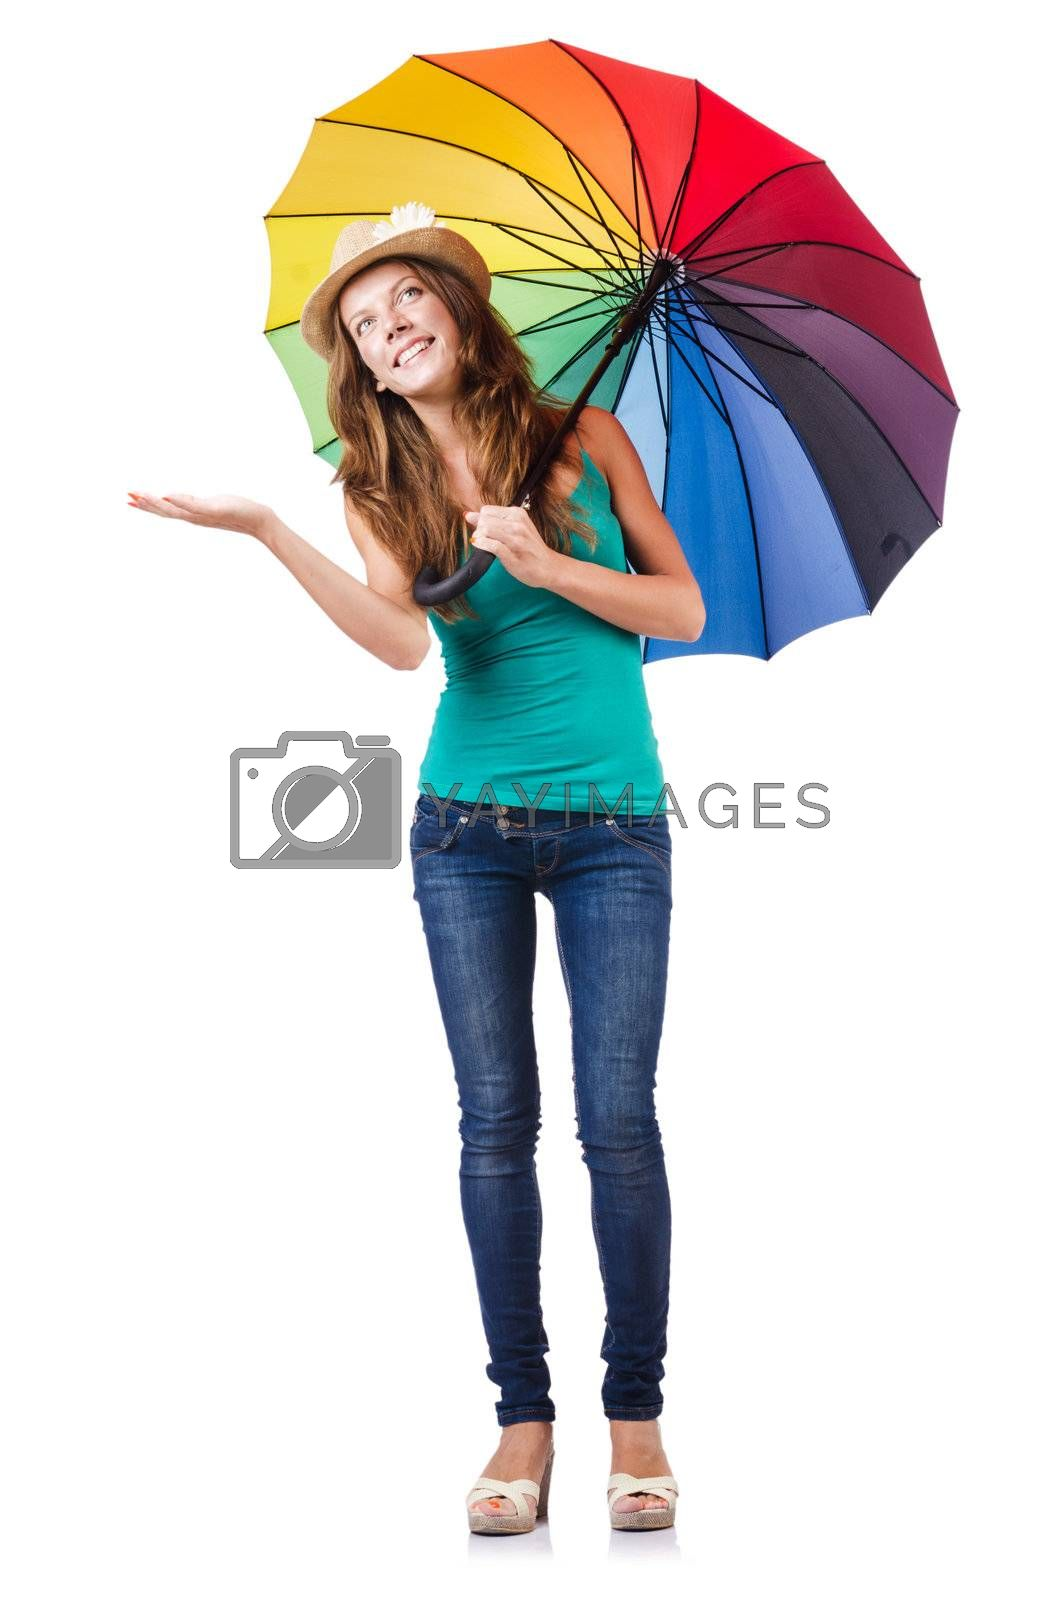 Young woman with colourful umbrella by Elnur